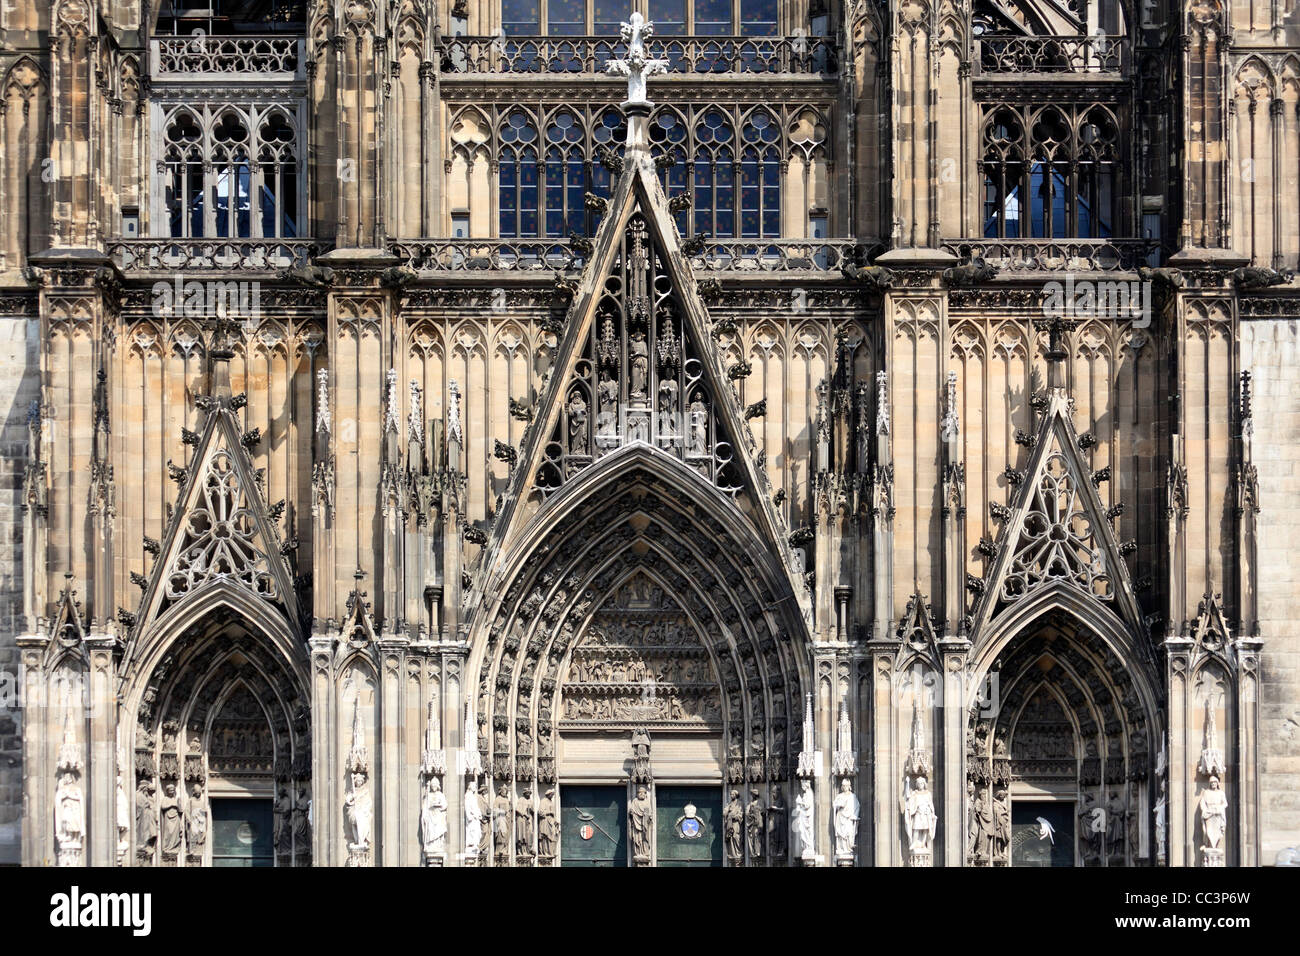 Germany, North Rhine Westphalia, Cologne (Koln), Cathedral - Stock Image